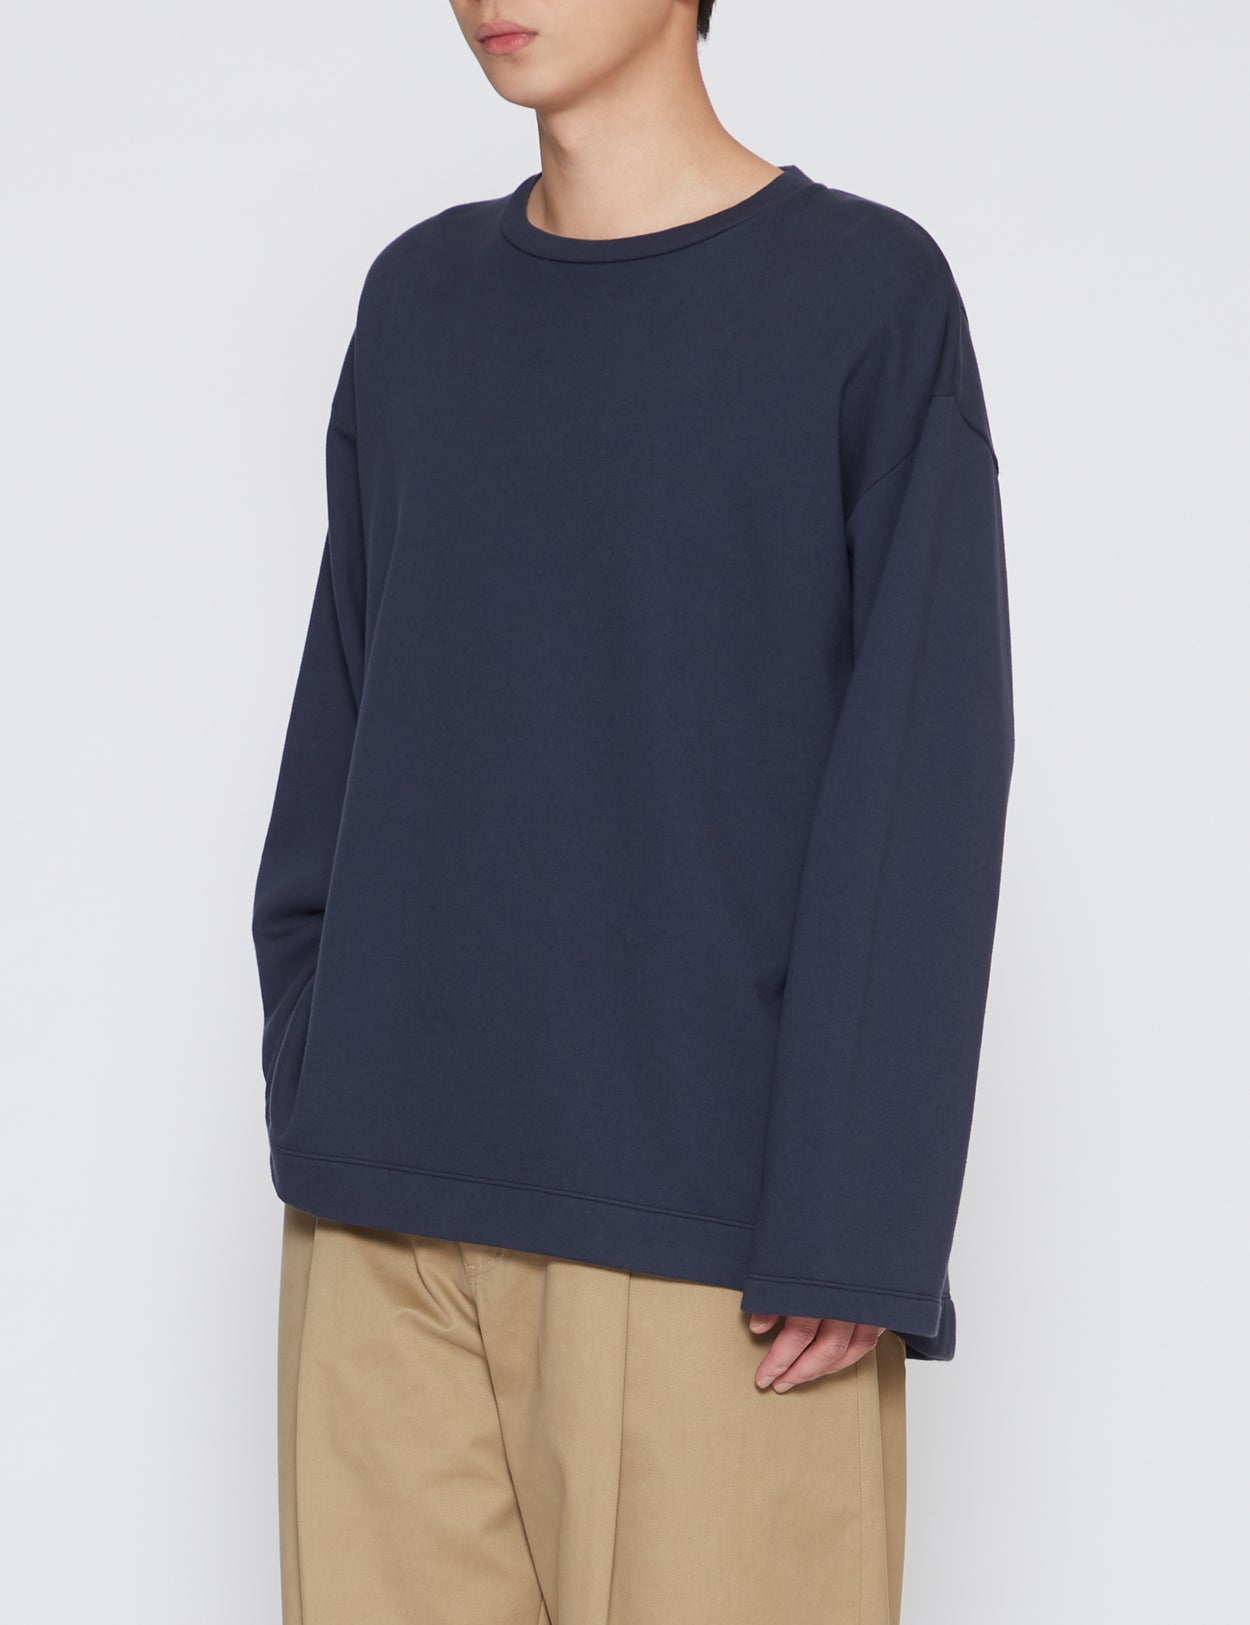 NAVY FLUTTER TAIL BUCK SIDE TUCKED SWEATER